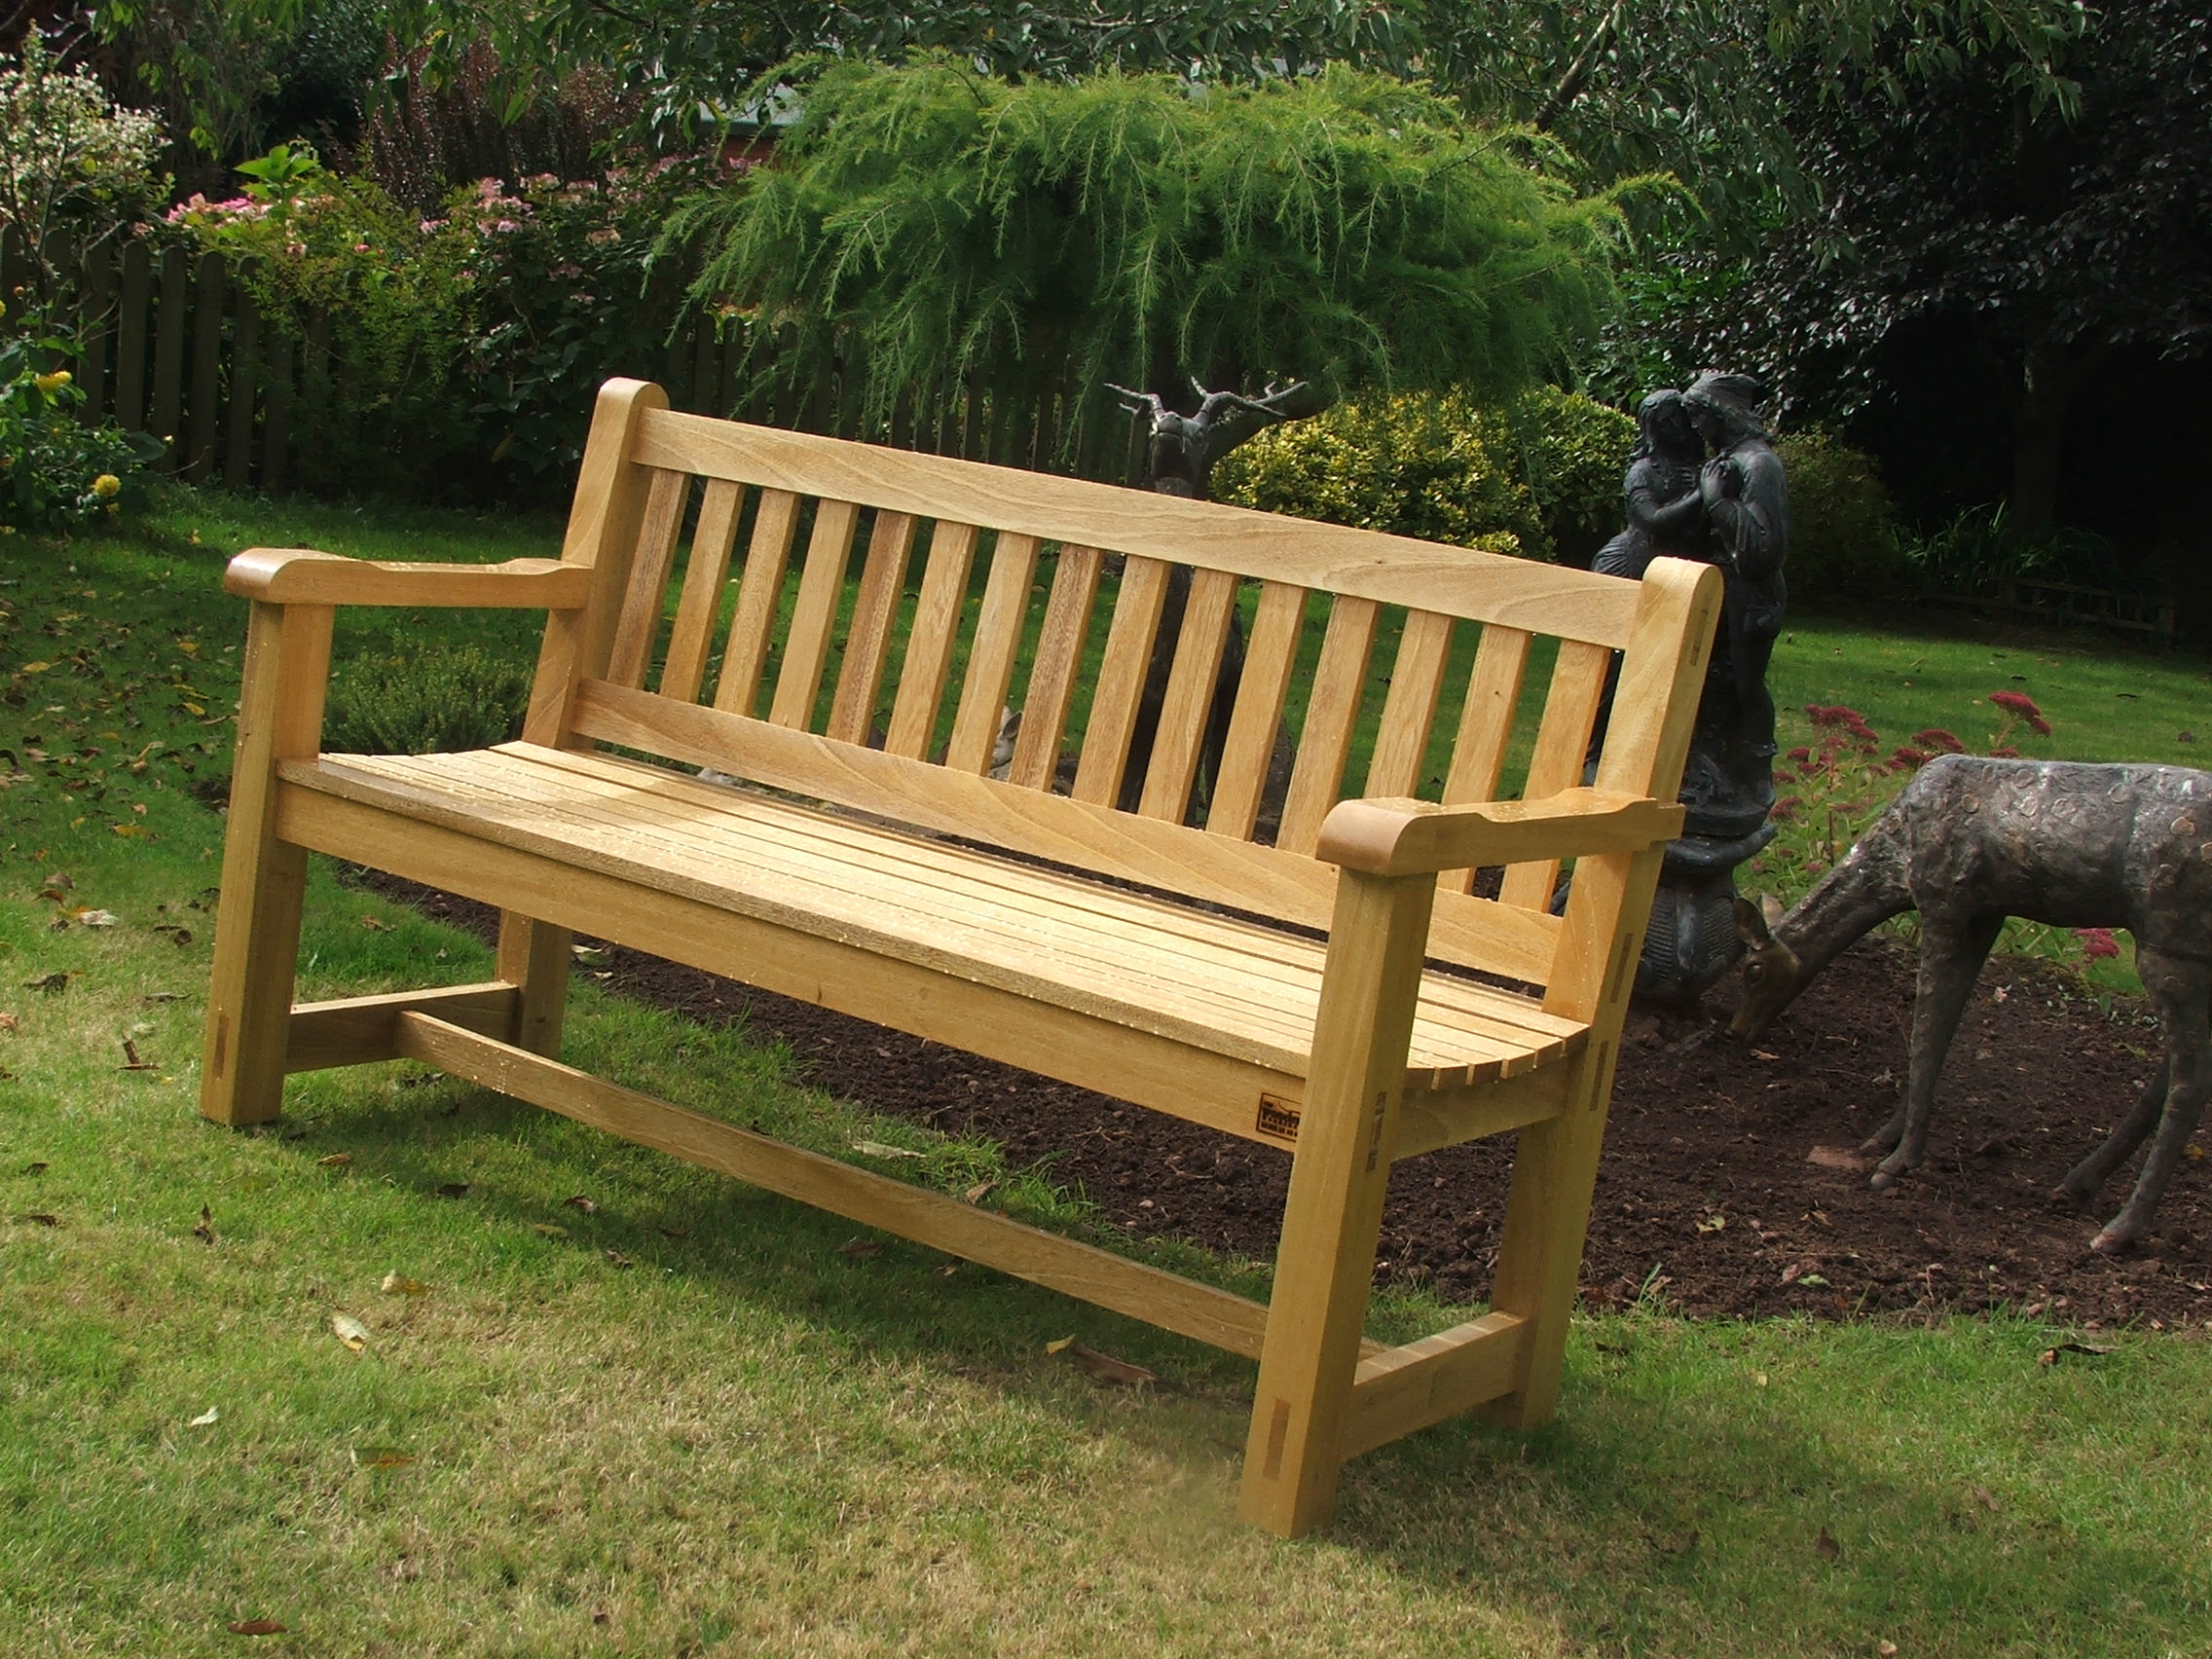 Garden benches to sit on - CareHomeDecor